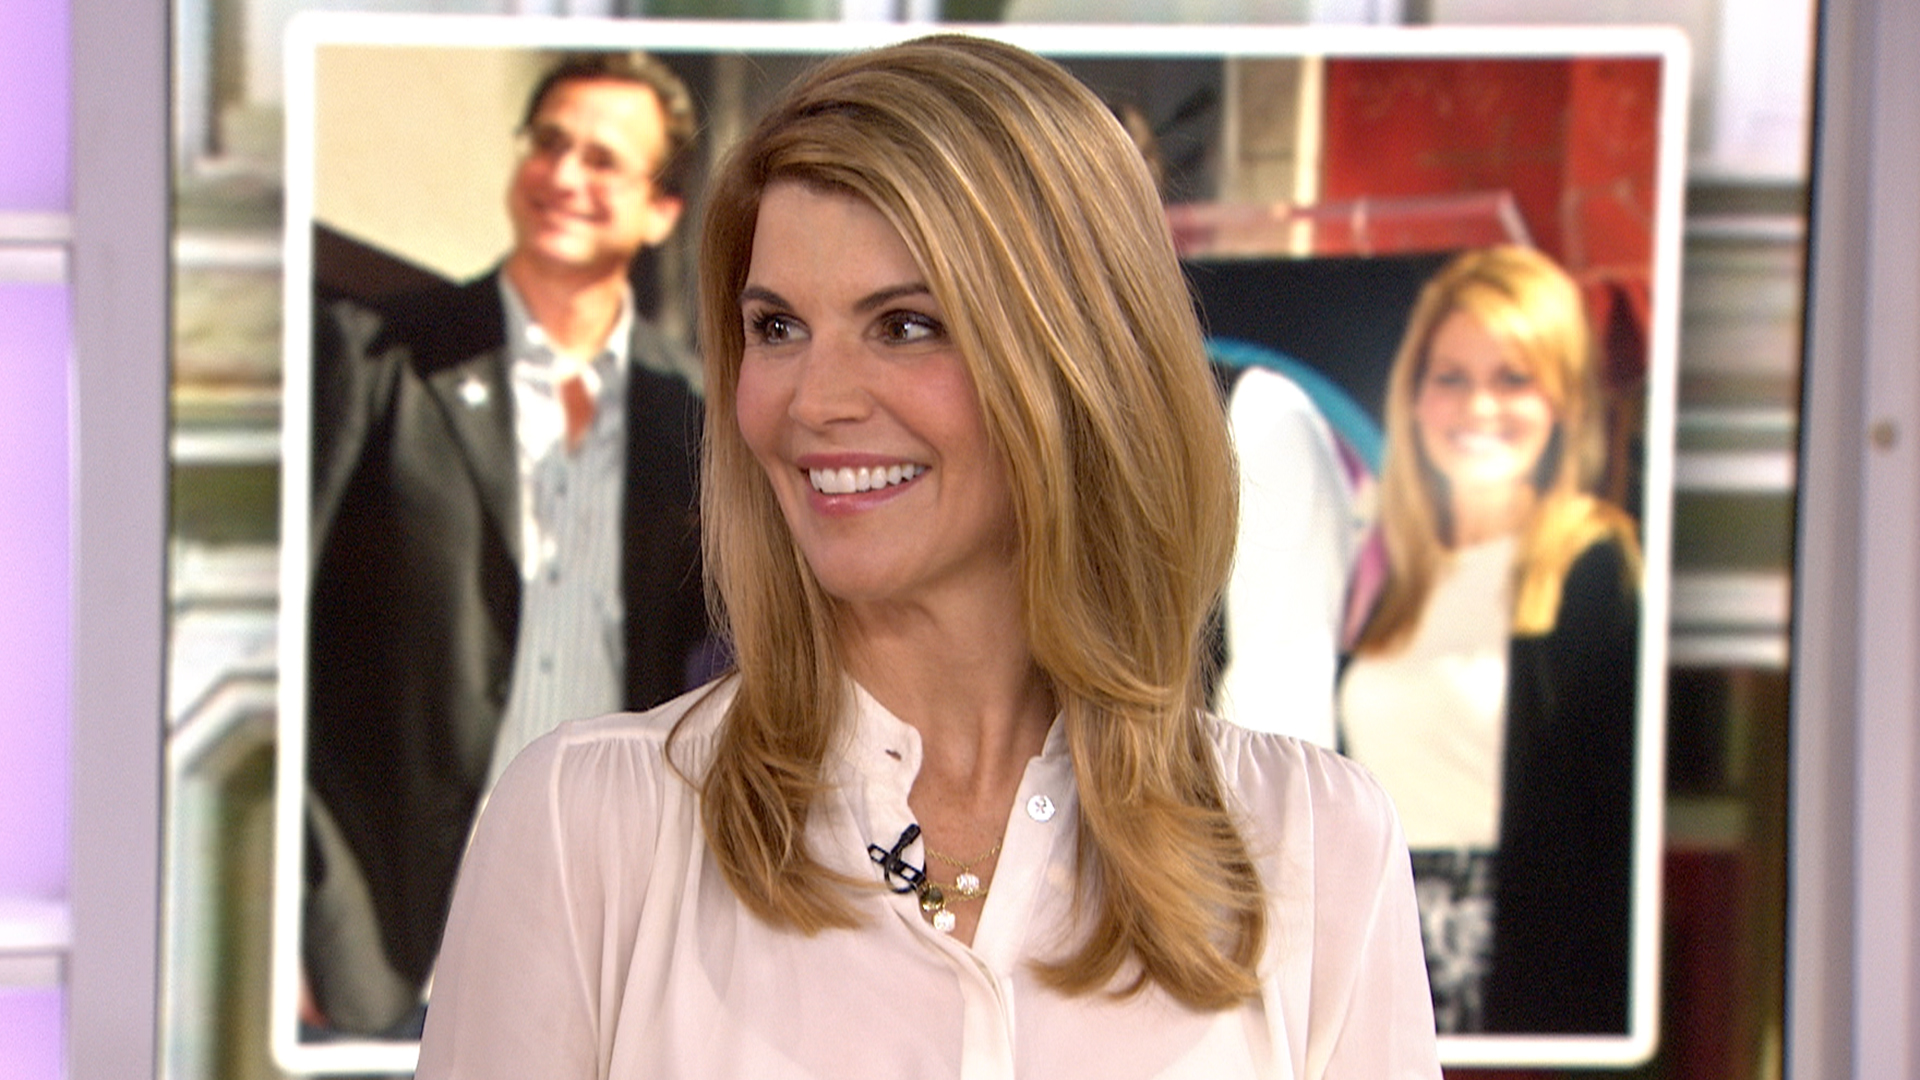 Lori Loughlin: Being on 'Fuller House' Set Was 'Surreal'